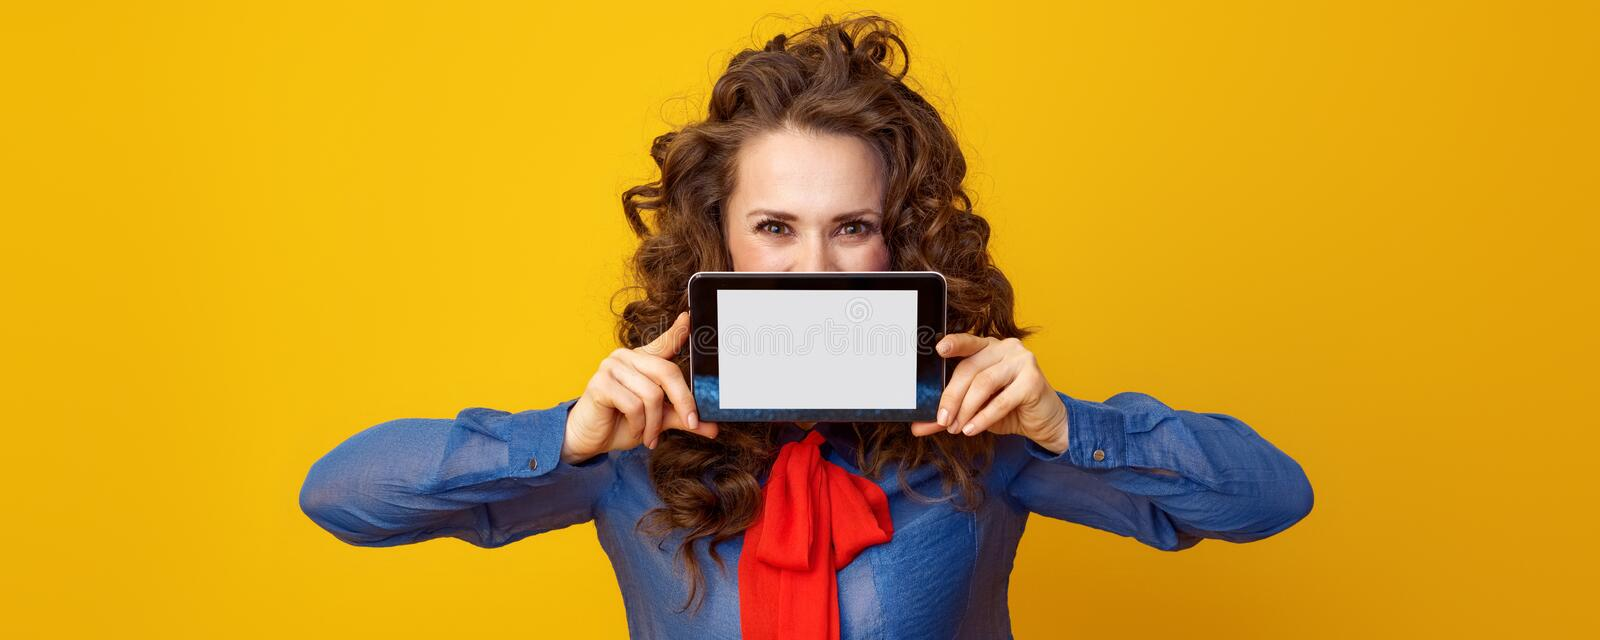 Woman on yellow background hiding behind tablet PC blank screen royalty free stock photos